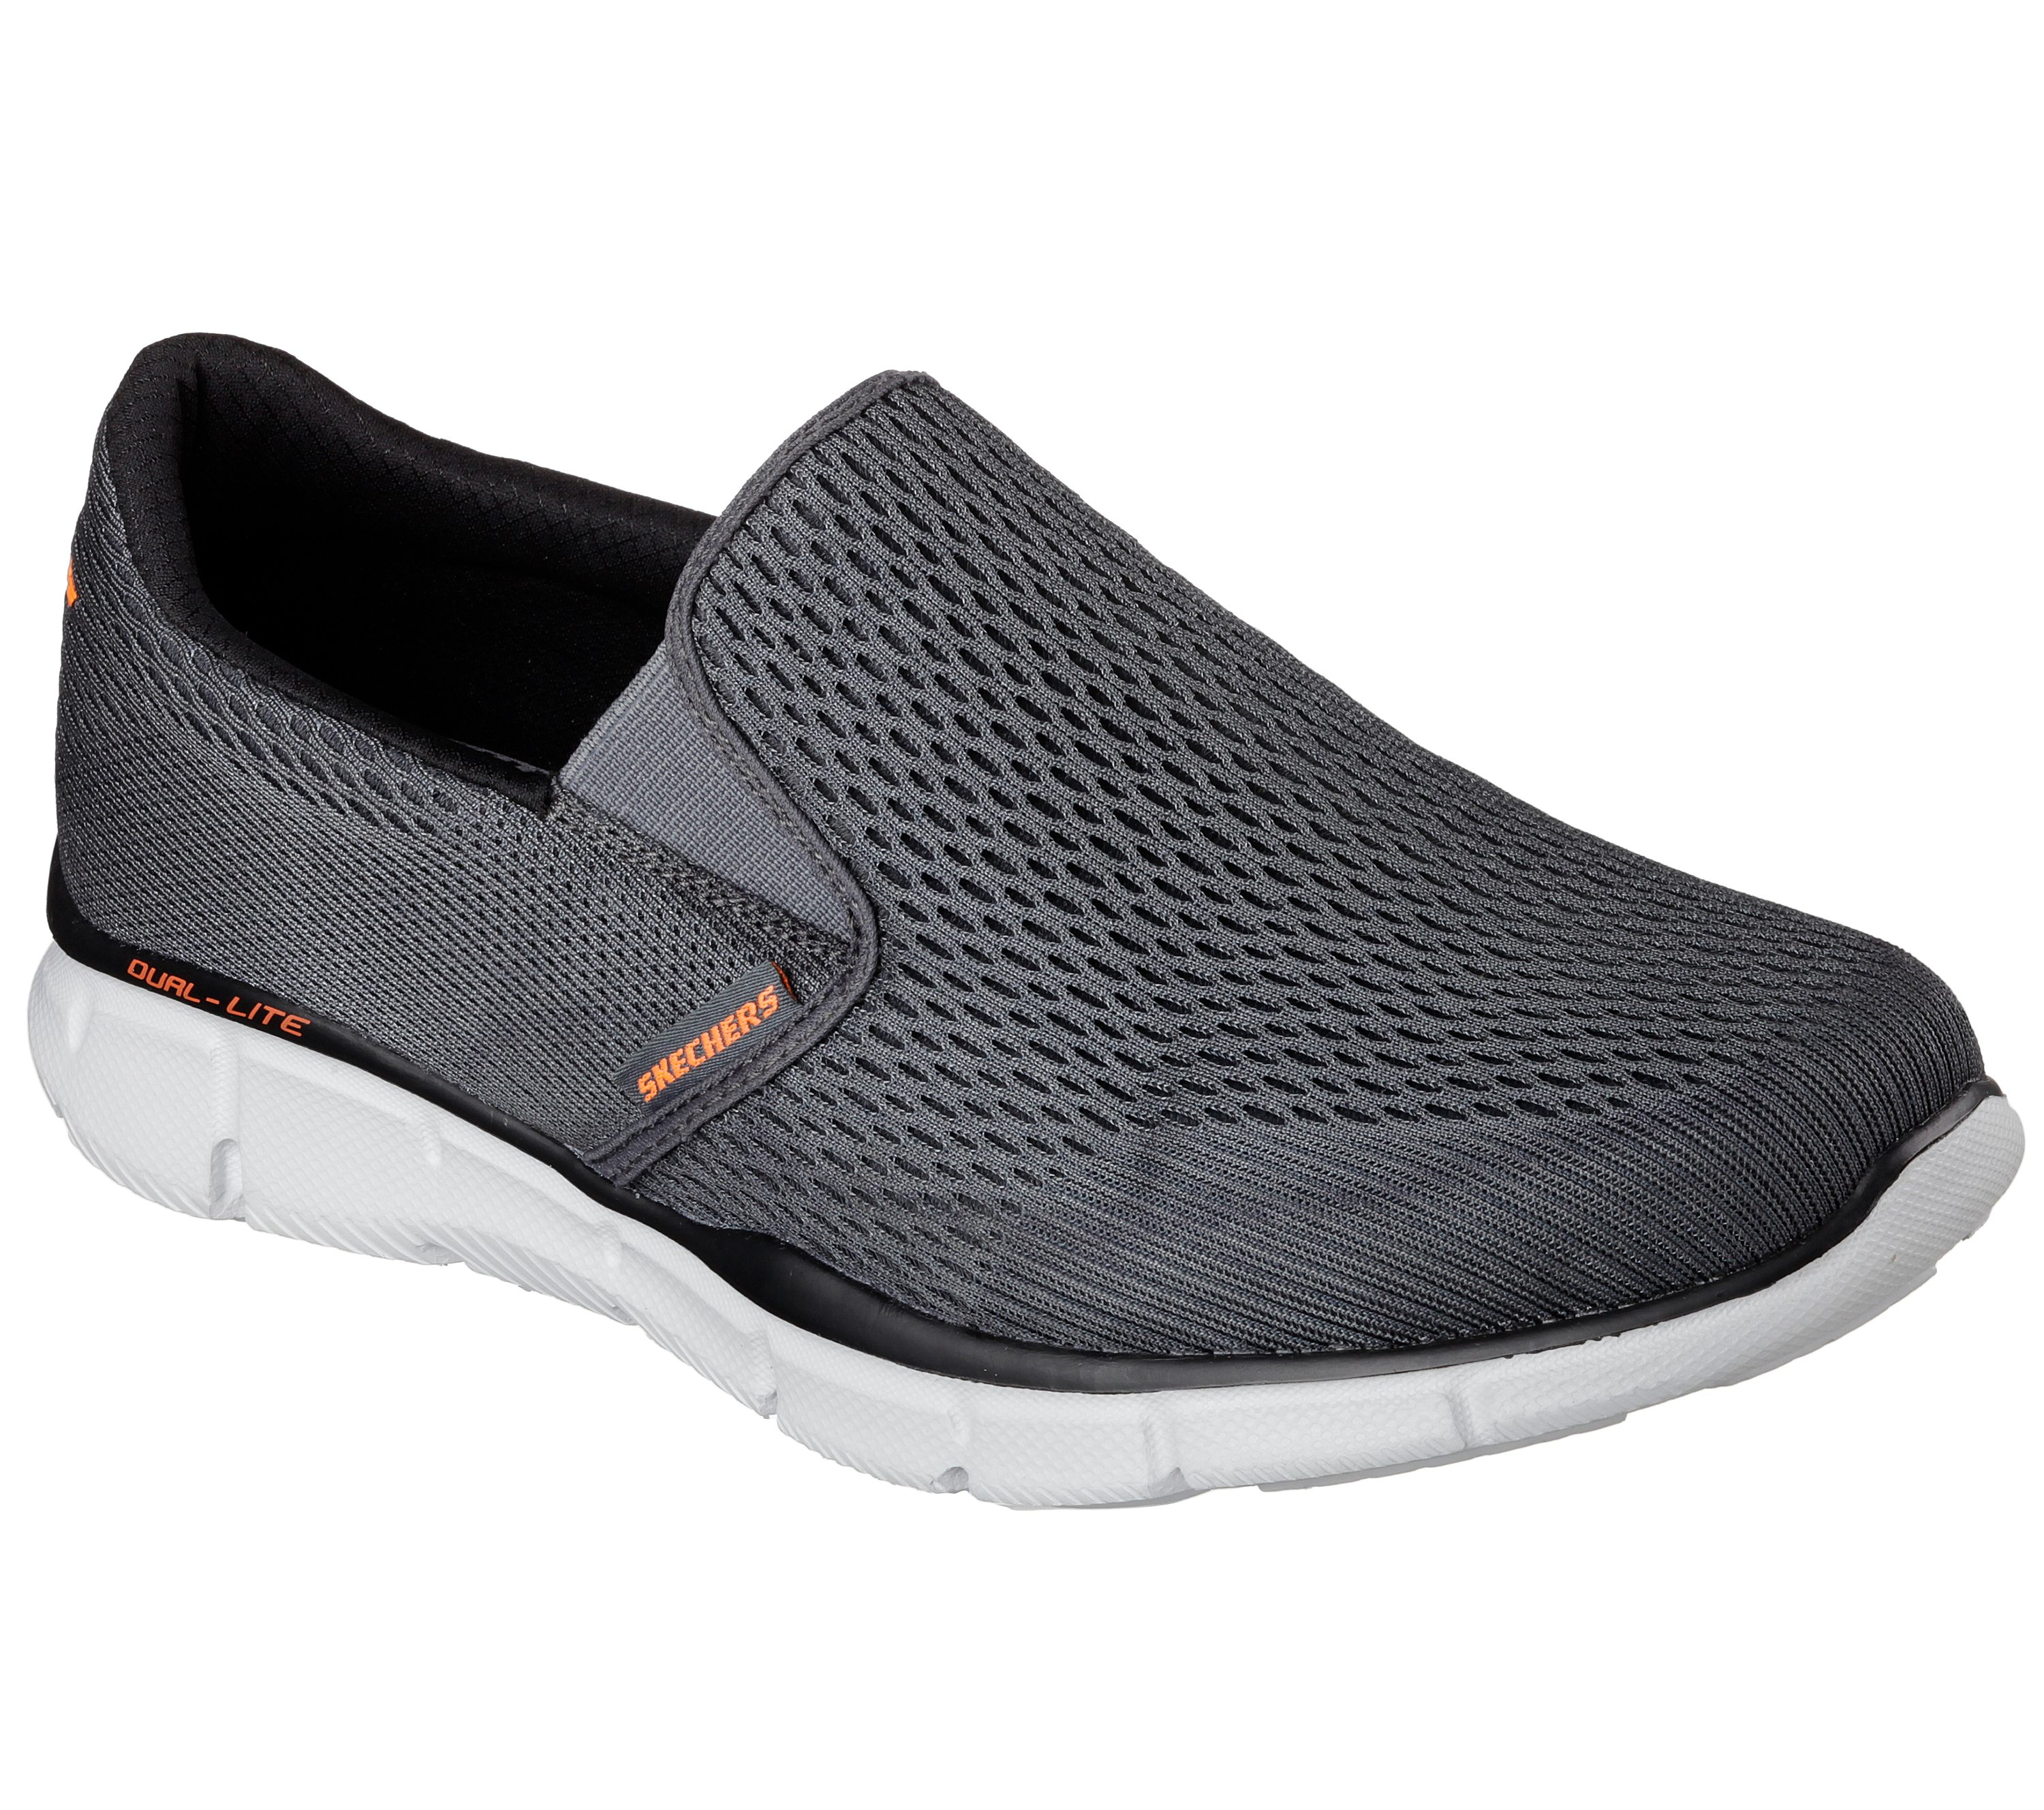 Shop the Equalizer - Double Play | SKECHERS